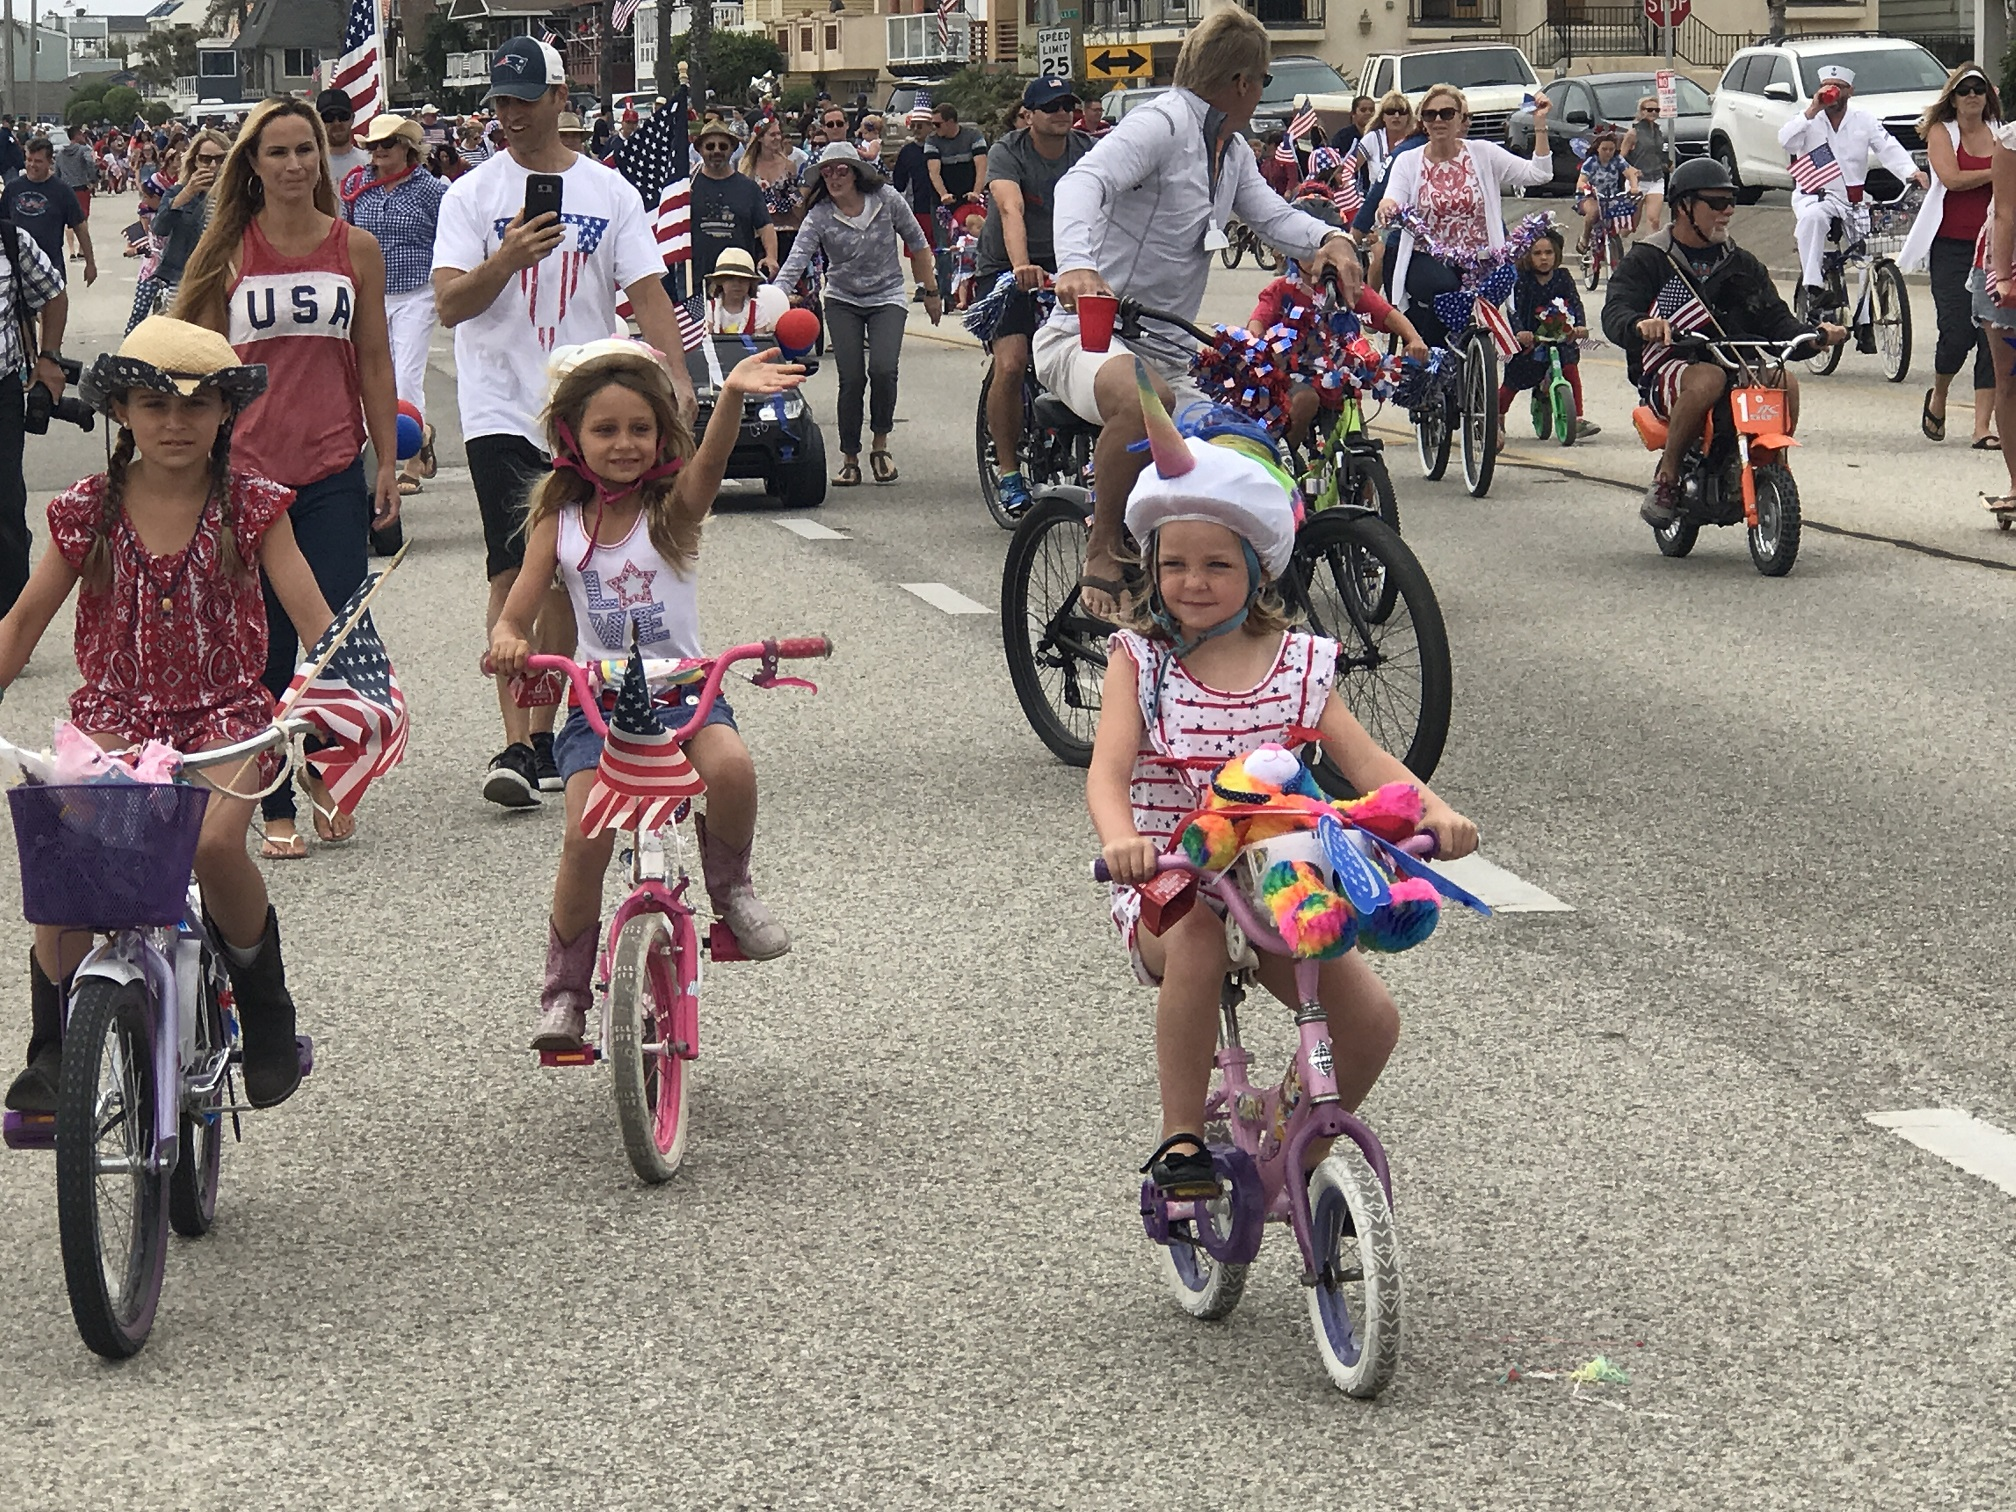 Patriotic participants of all ages at the 4th of July Children's Parade